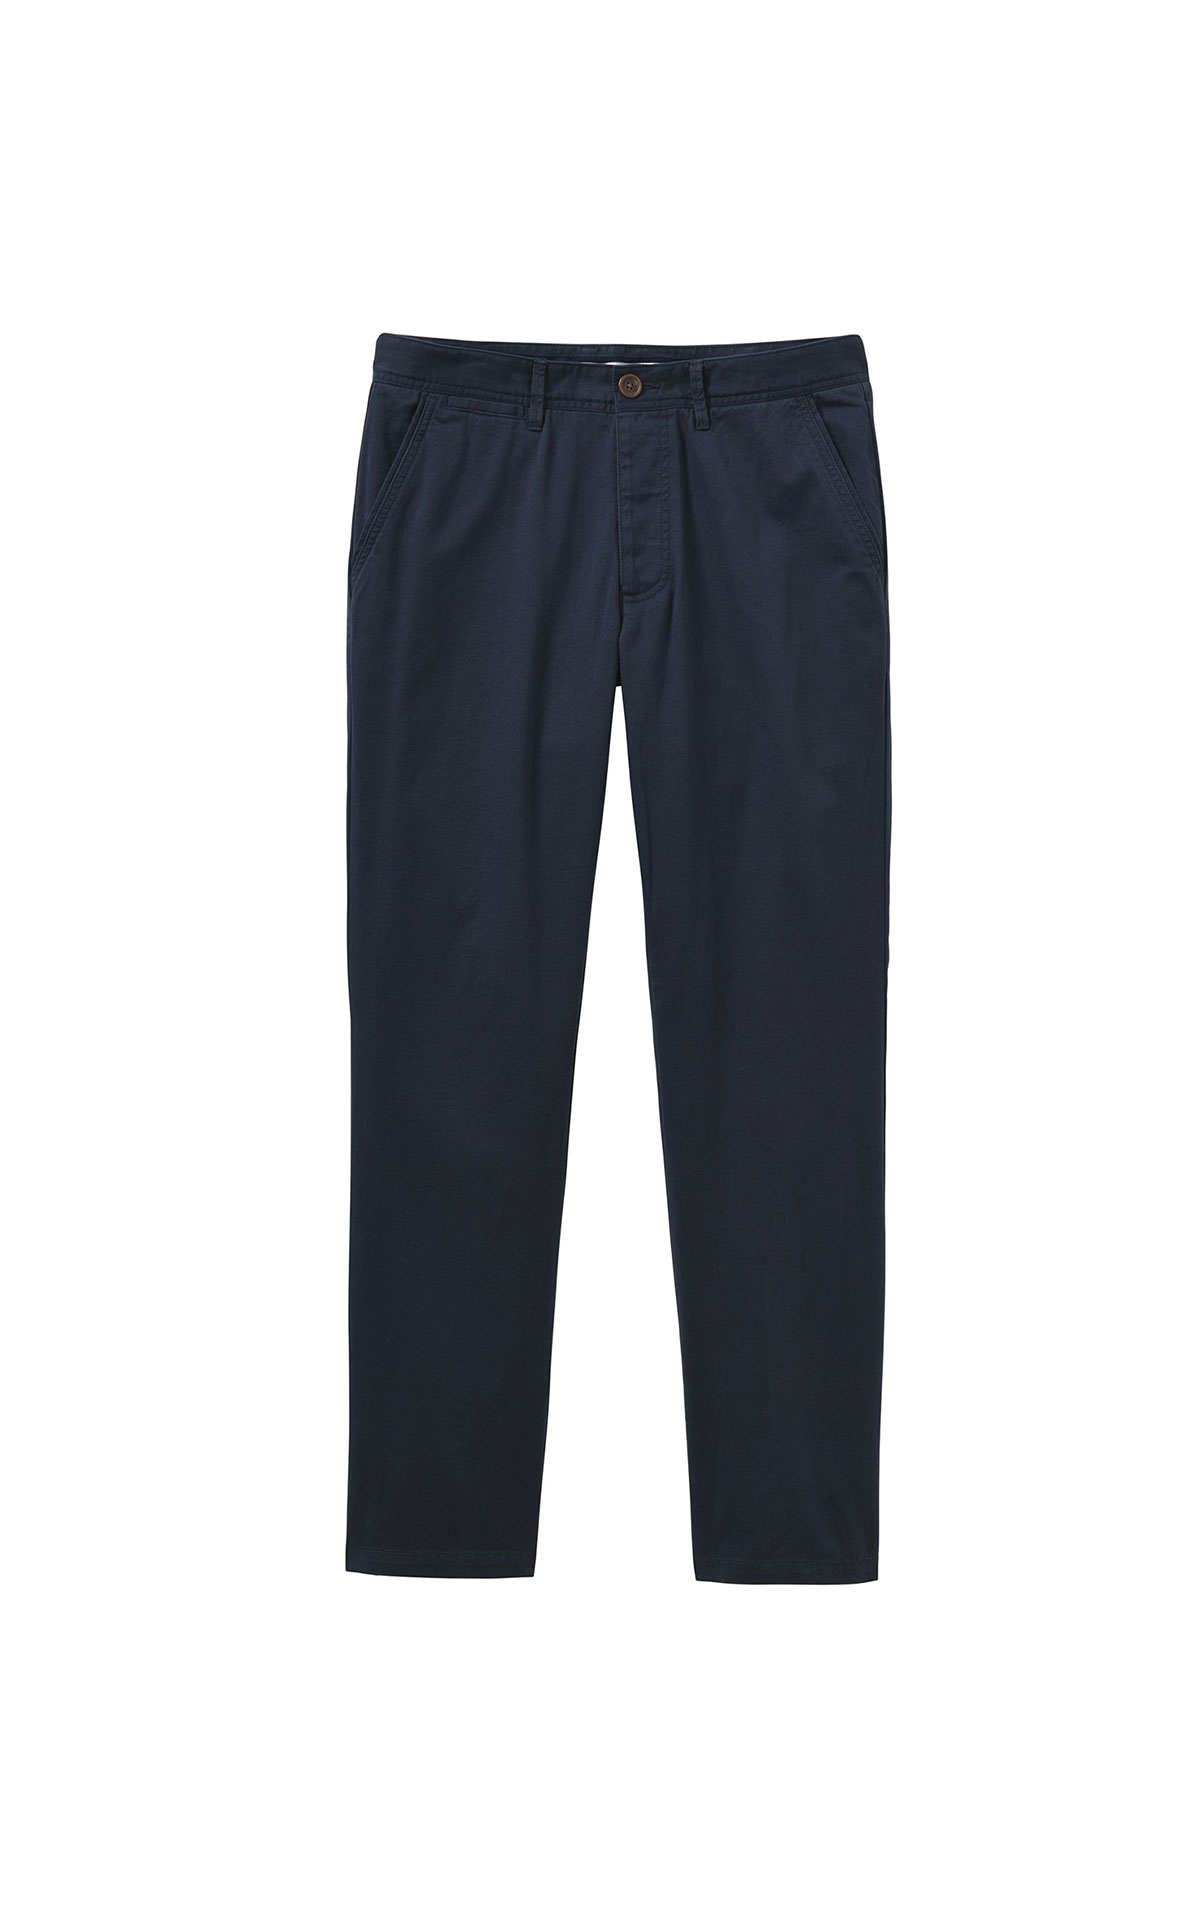 Savoy Taylors Guild Crew Clothing Company navy blue chino from Bicester Village